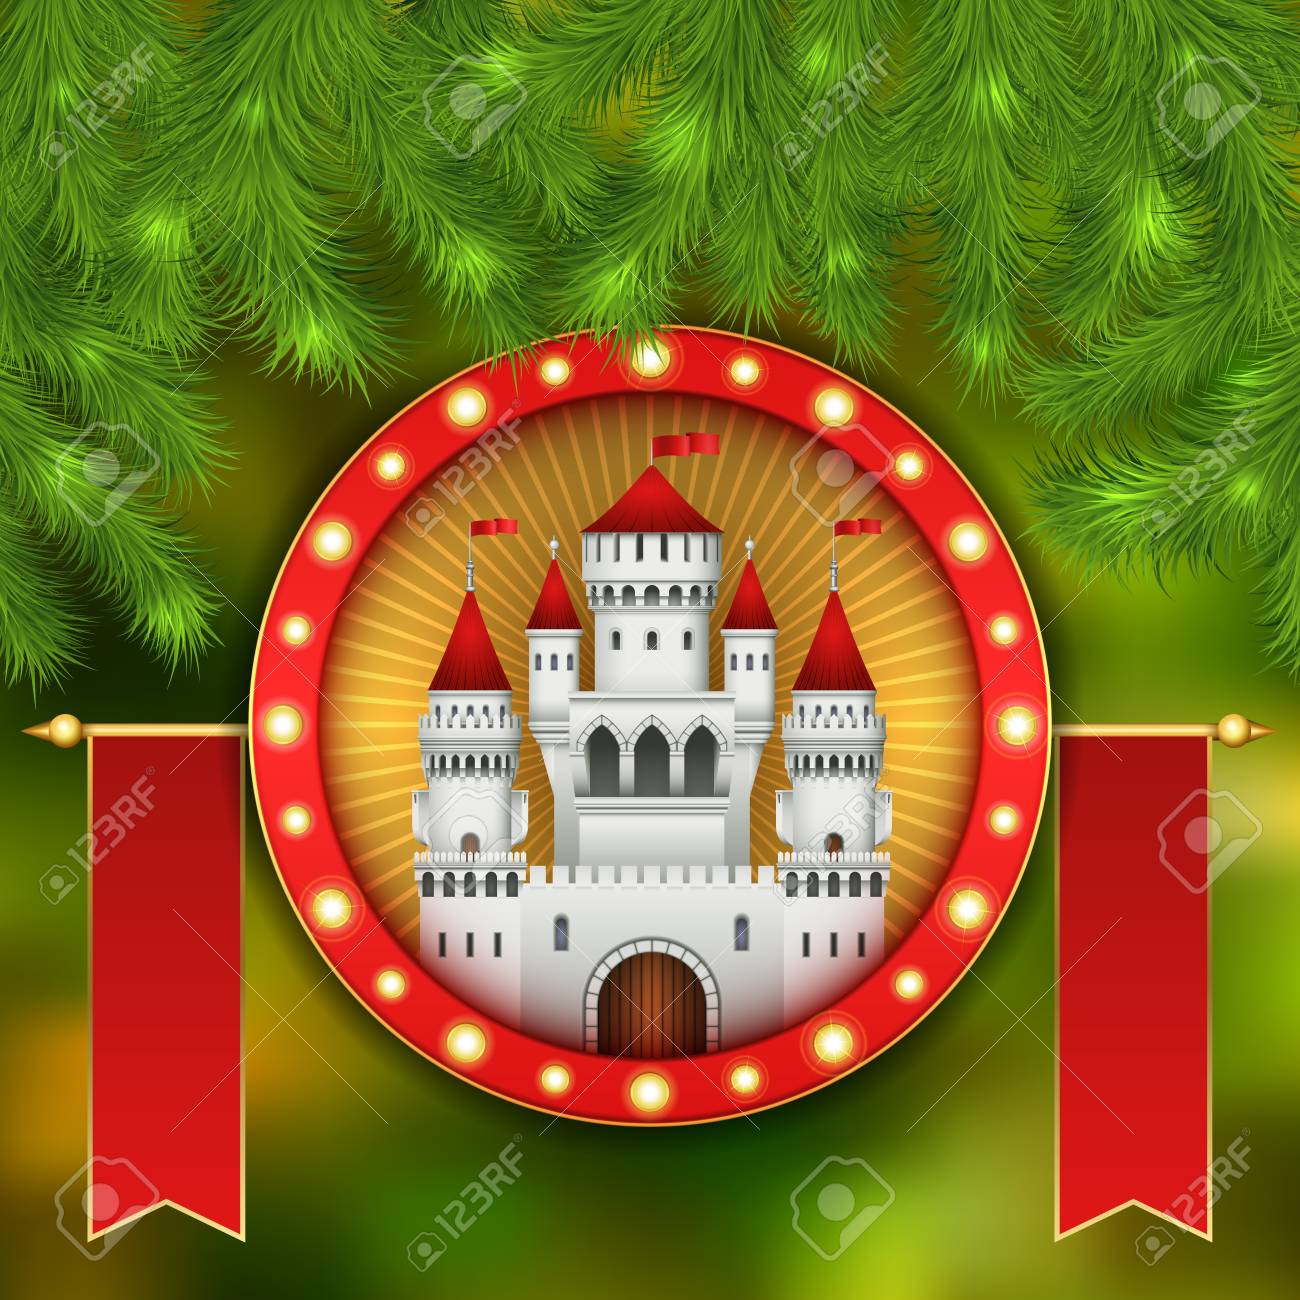 Christmas card with white castle, fireworks and branches of a Christmas tree. Christmas illustration with celebratory elements. White medieval castle with a red roof and red flags on the spiers - 90224118